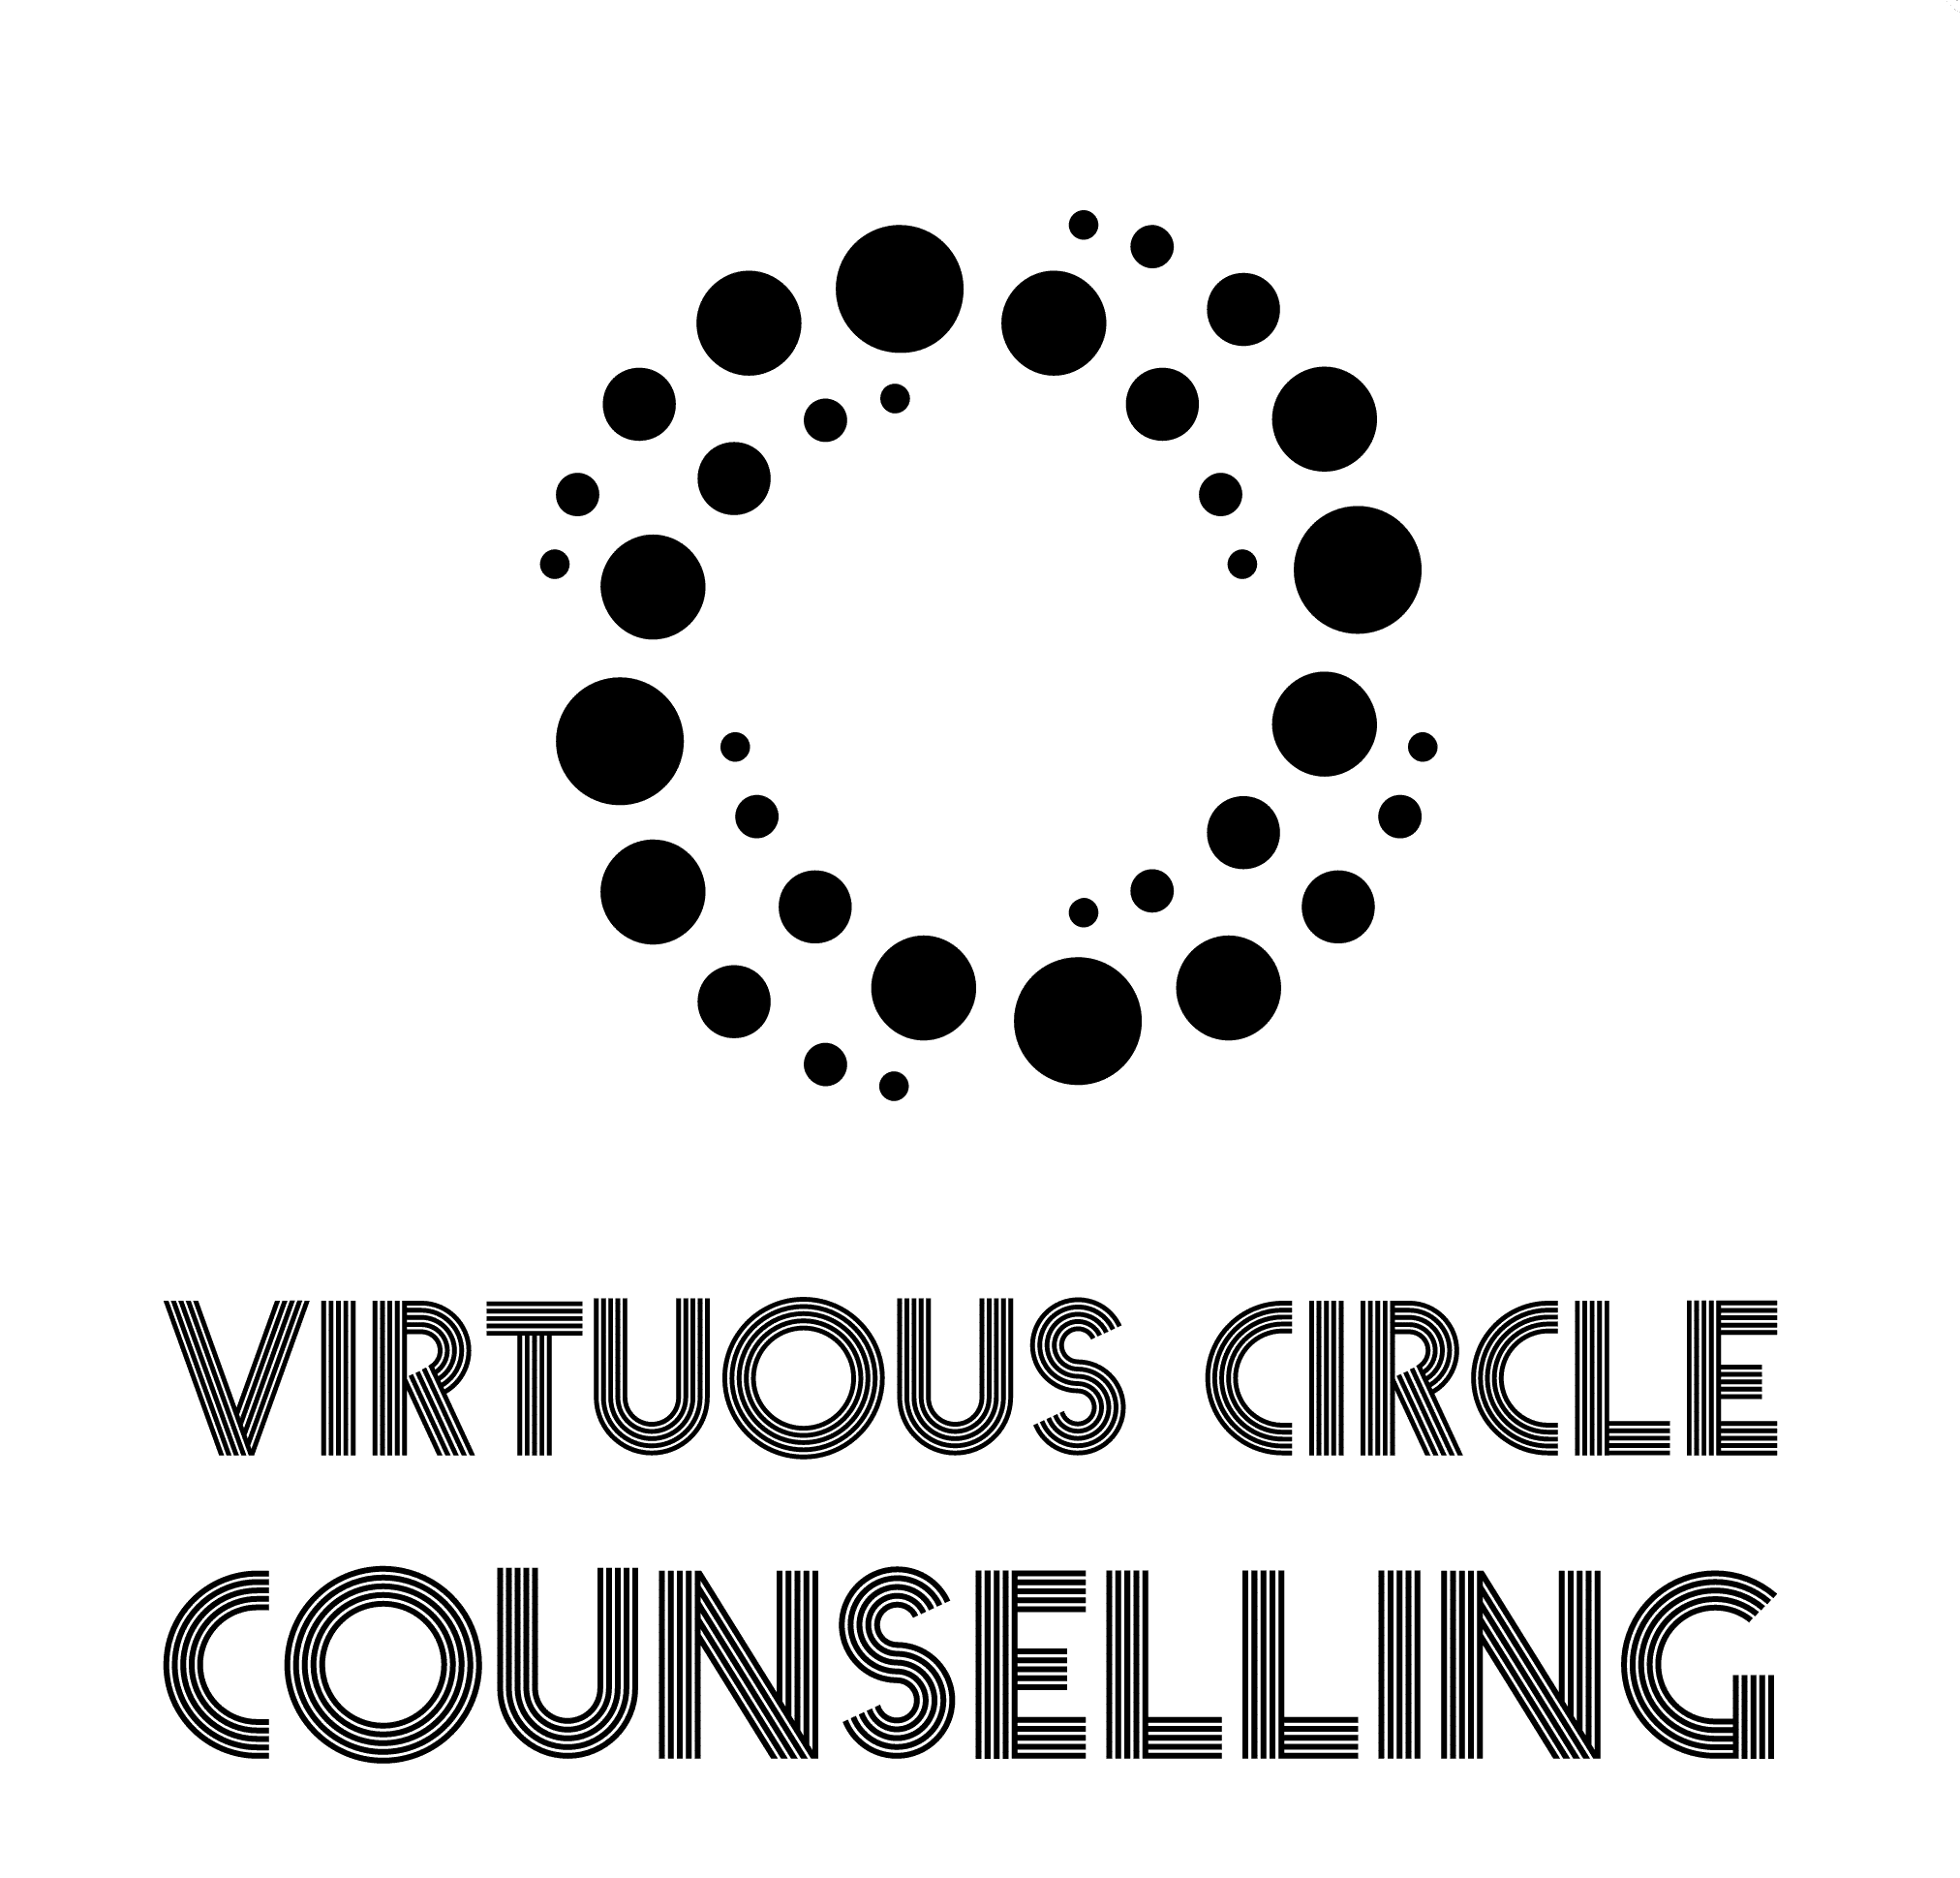 Virtuous Circle Counselling logo